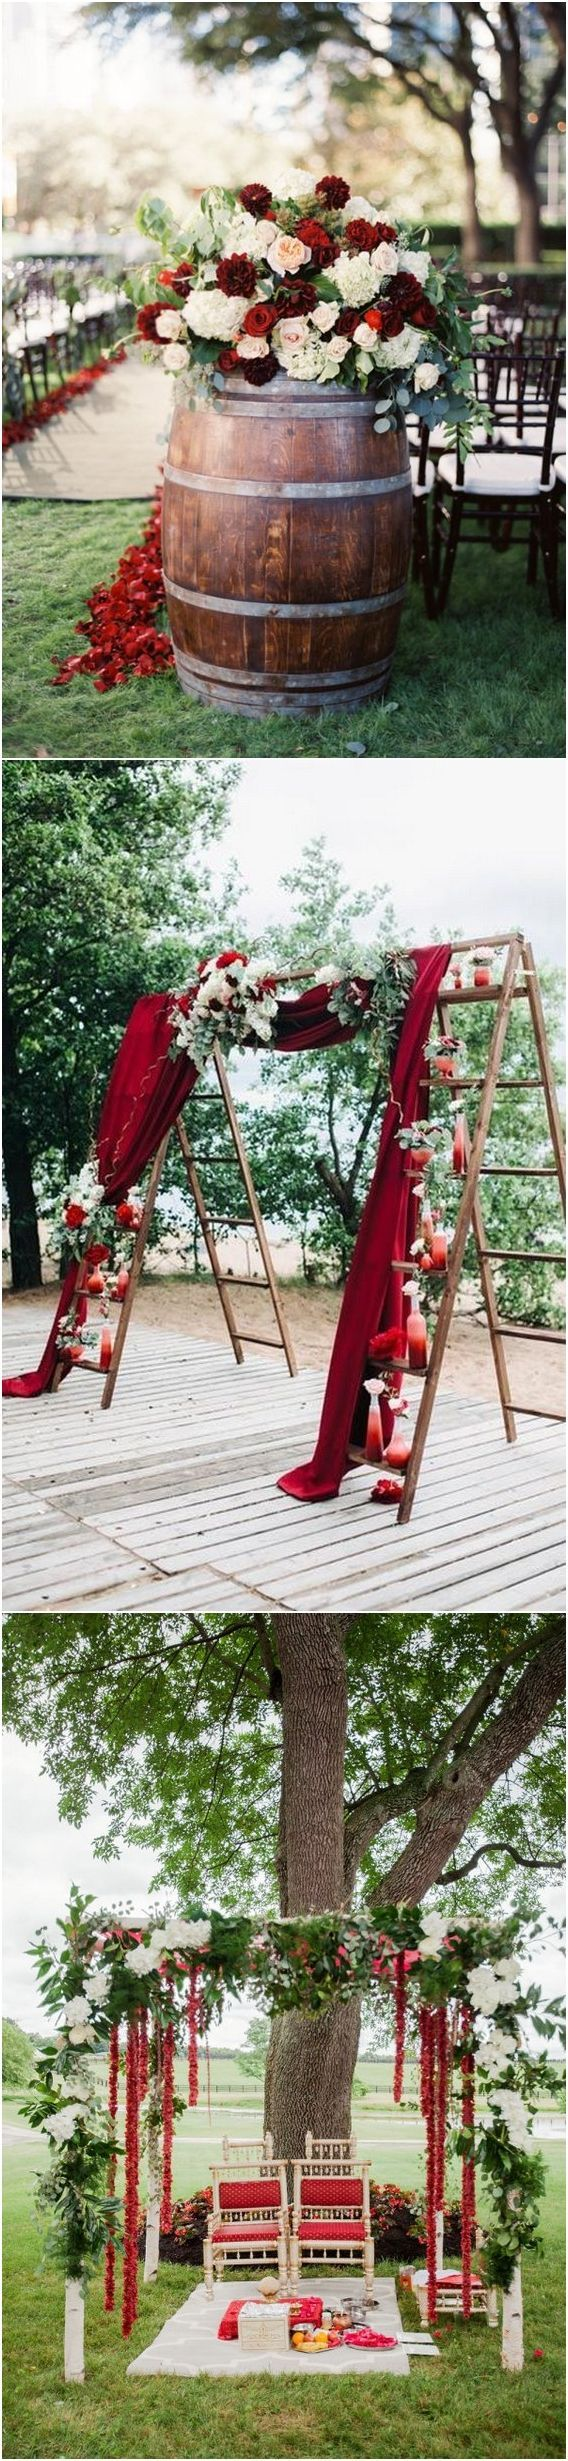 Wedding decoration ideas red and white   Fall Red Wedding Ideas We Actually Like  Outdoor settings Red